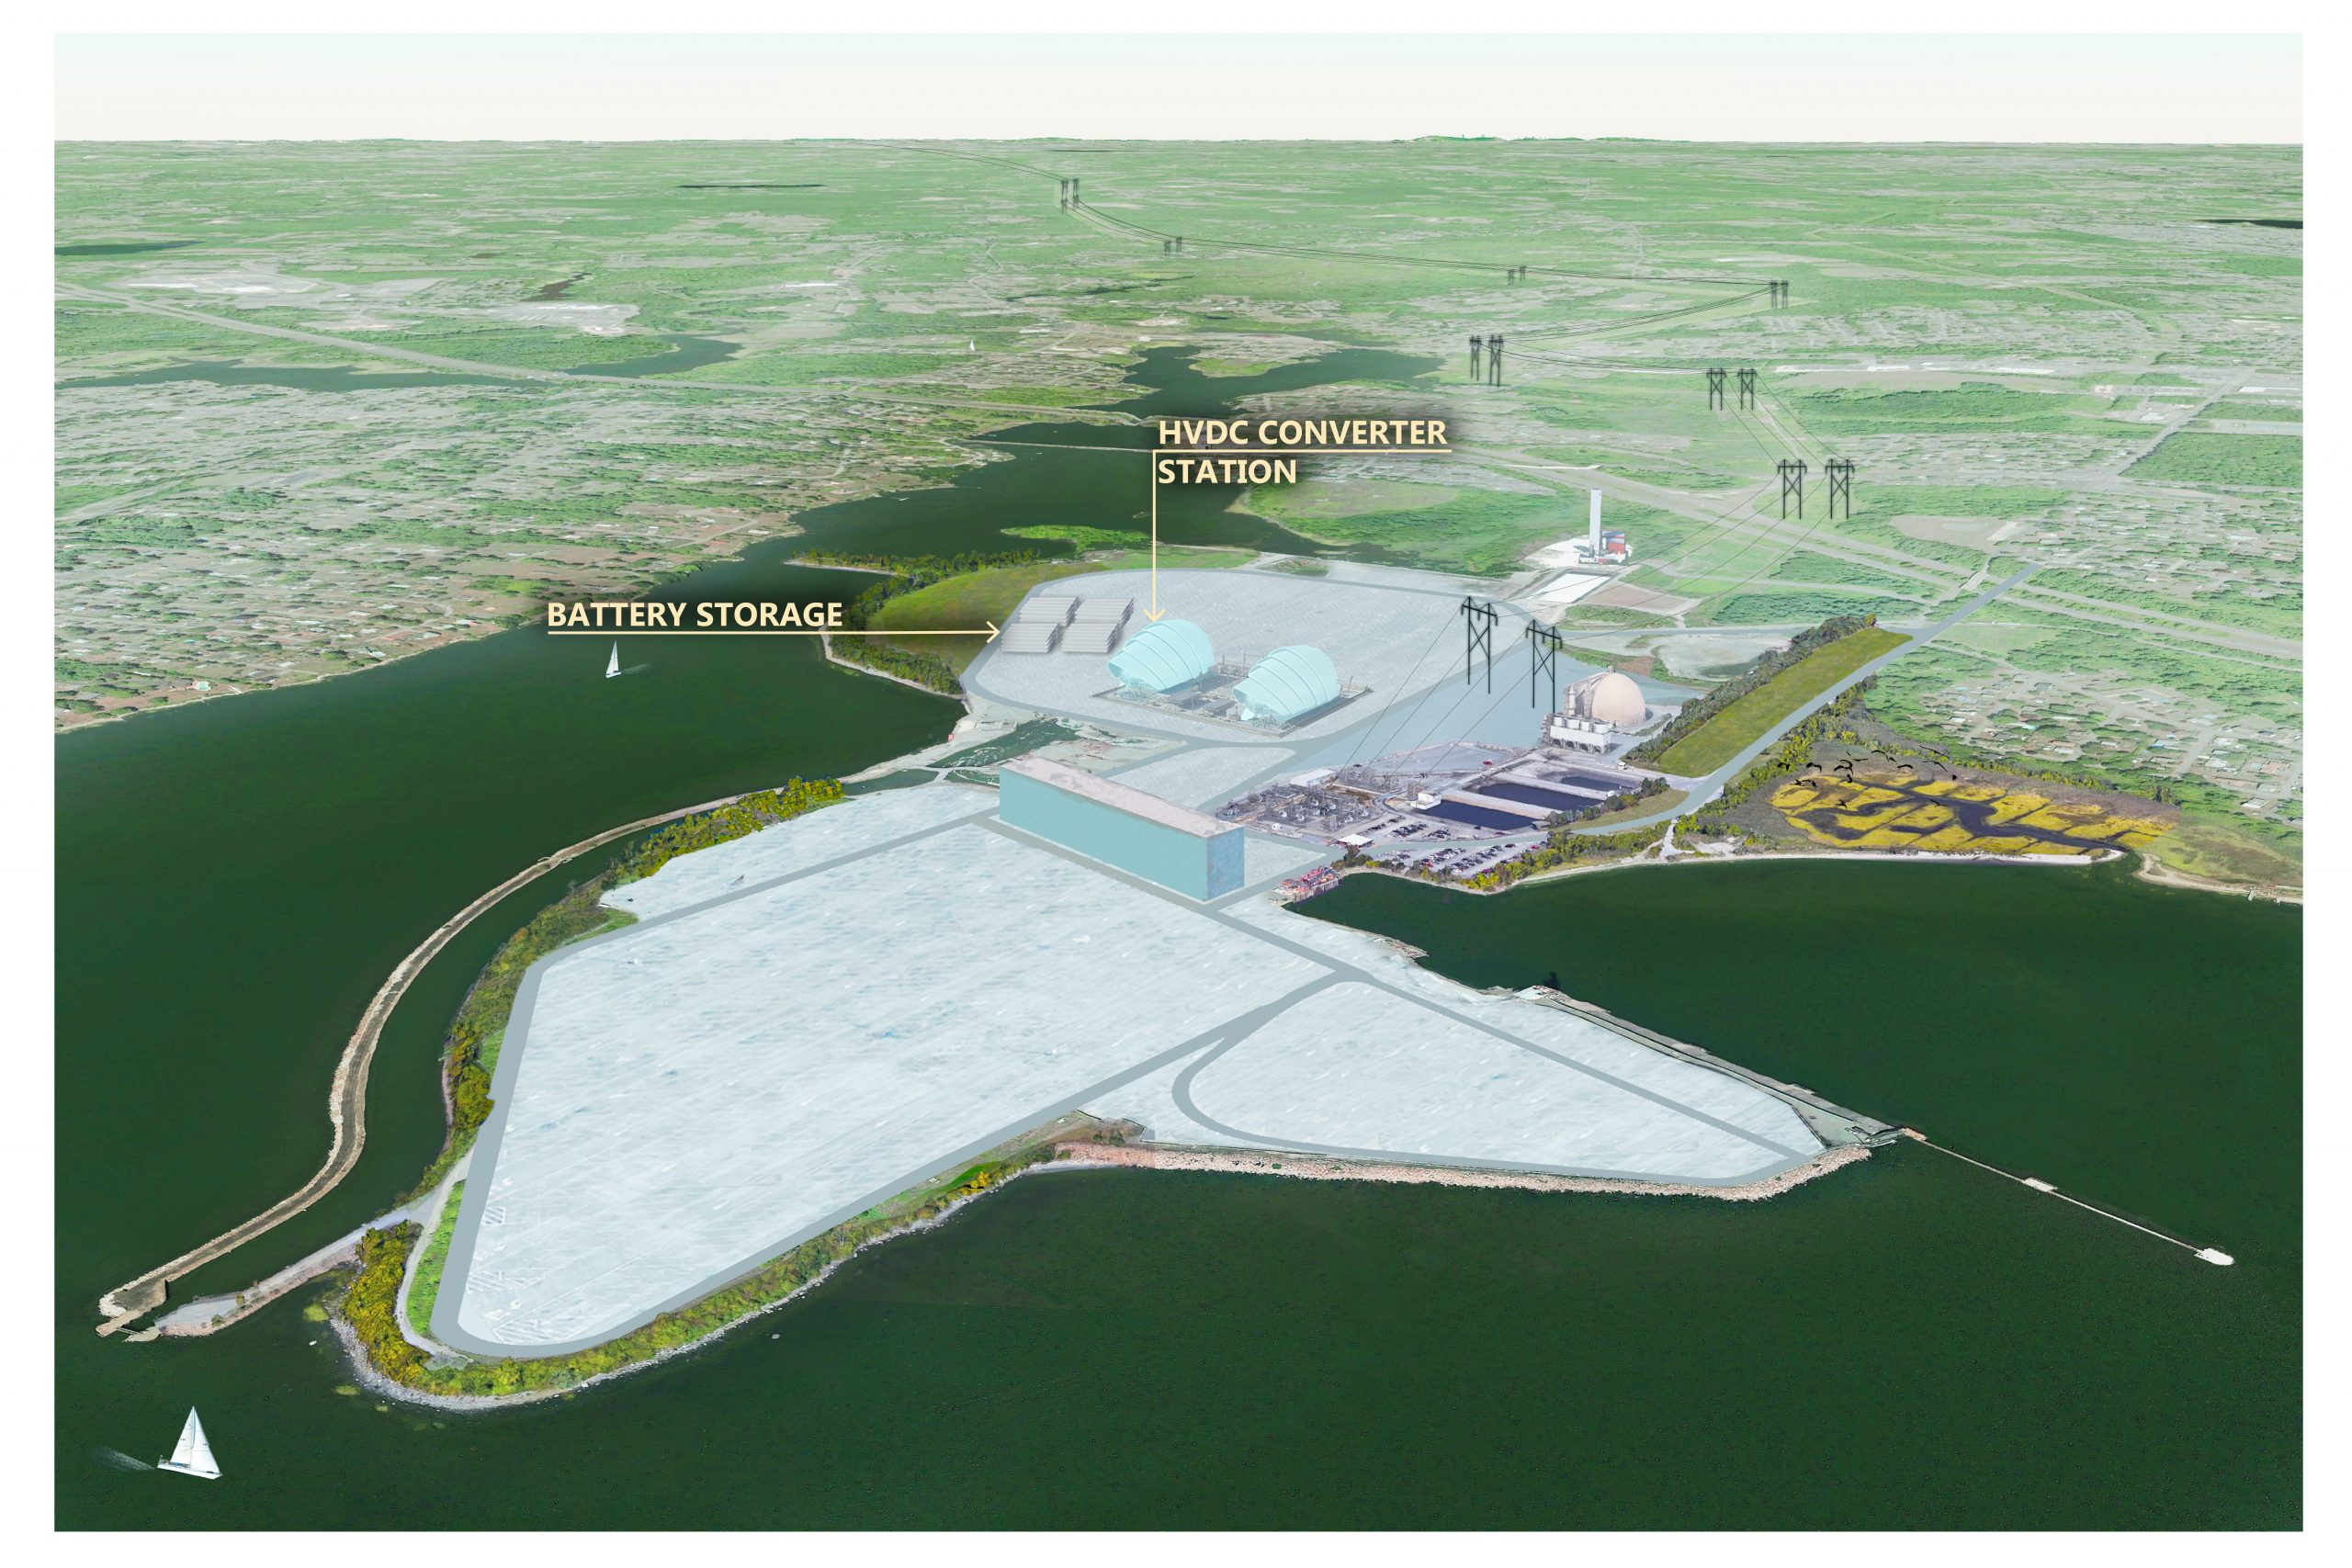 Mayflower Wind and Anbaric Agree to Bring Offshore Wind Ashore at Brayton Point-Supplements Mayflower's Cape Cod Efforts